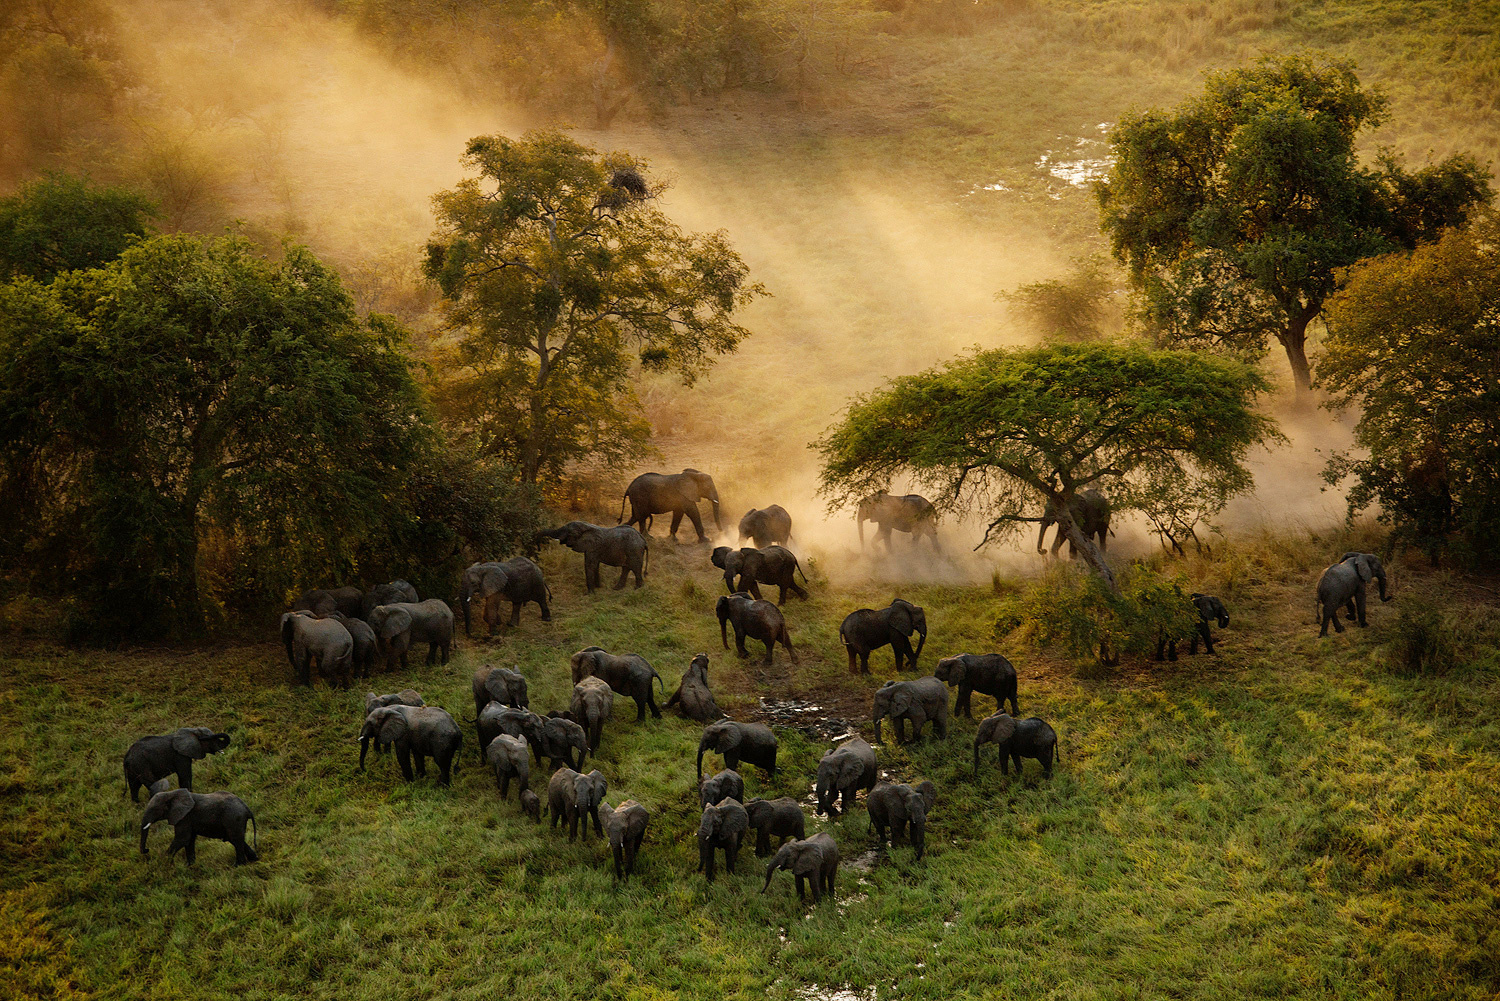 The elephant population in Zakouma National Park in Chad plummeted from approximately 4,000 in 2005 to just 450 in 2010 due to massive poaching.